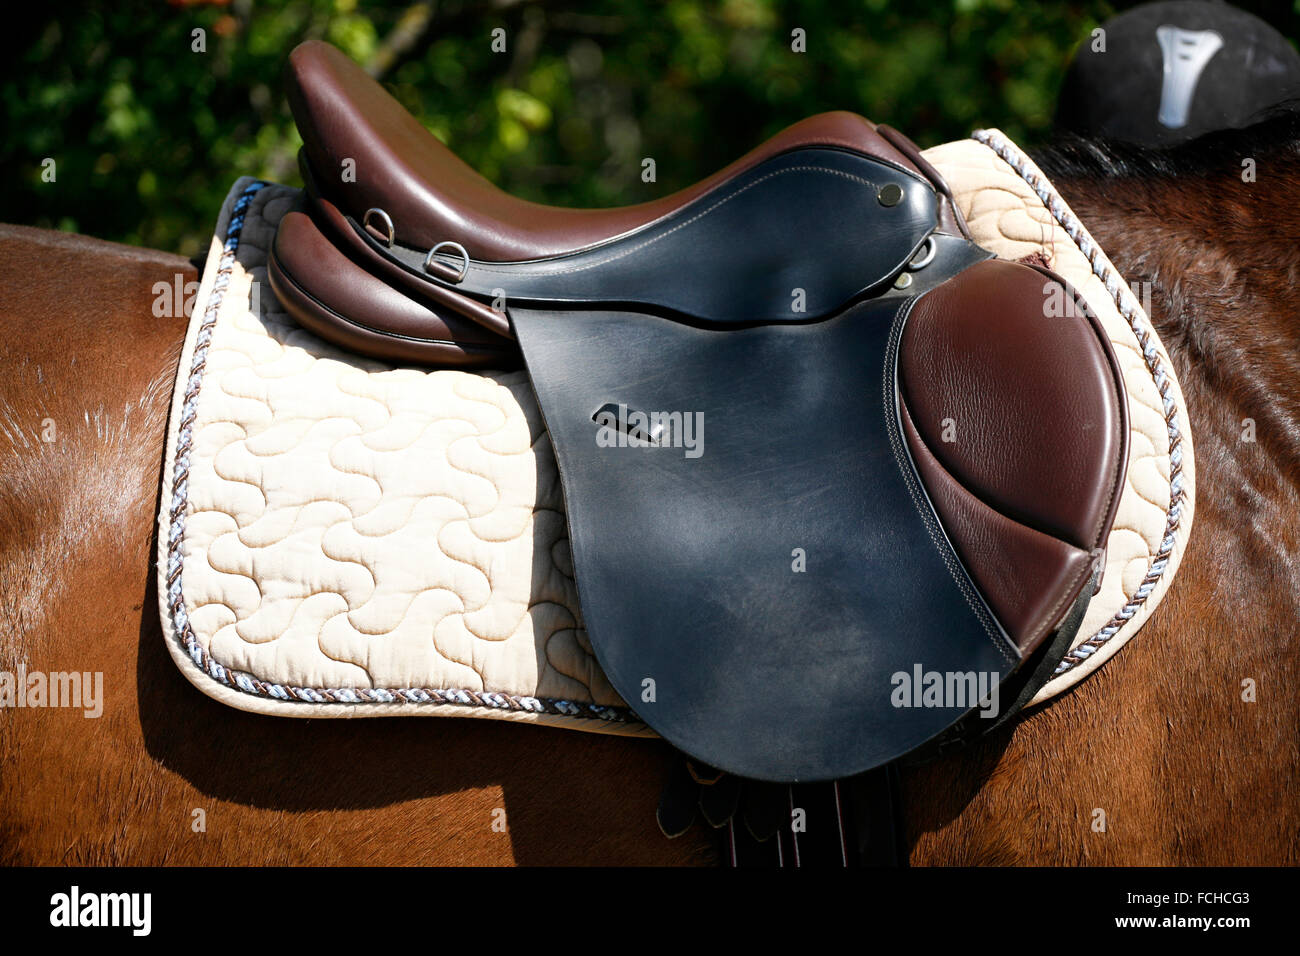 Black And Brown Leather Saddle On Back Of A Horse Stock Photo Alamy